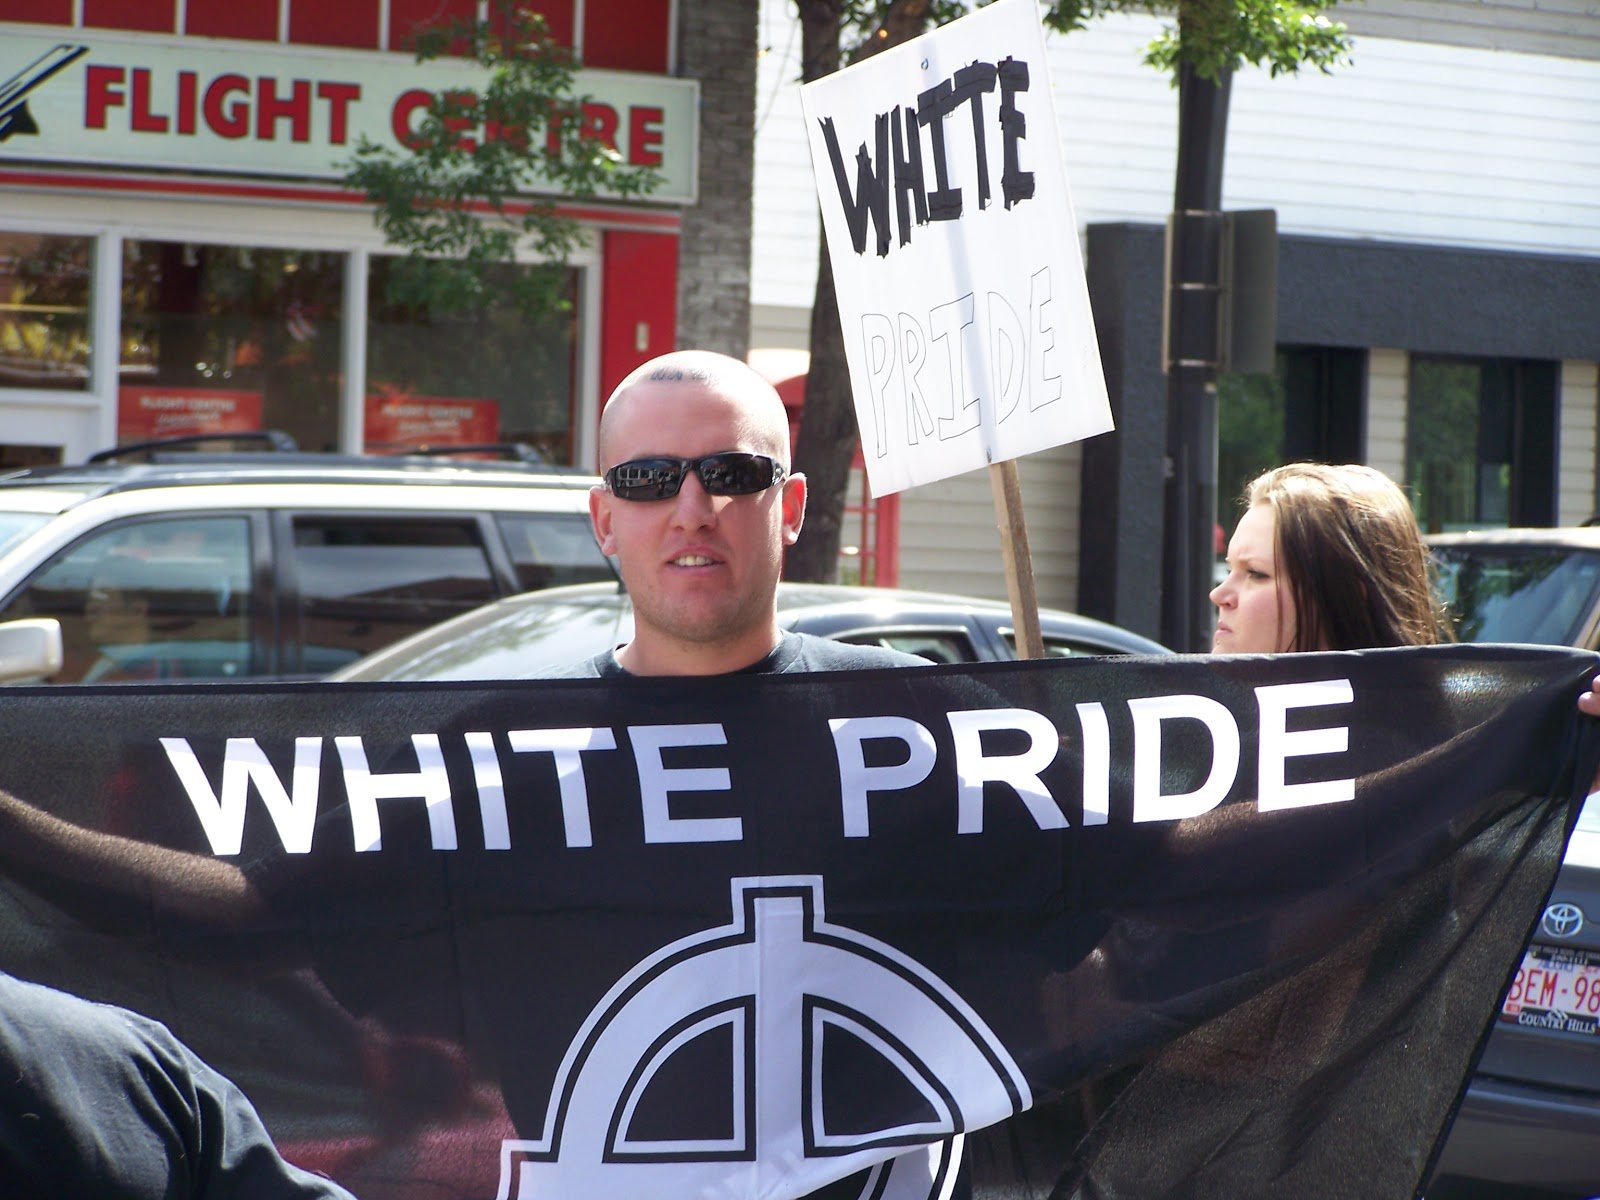 Man holding white pride sign